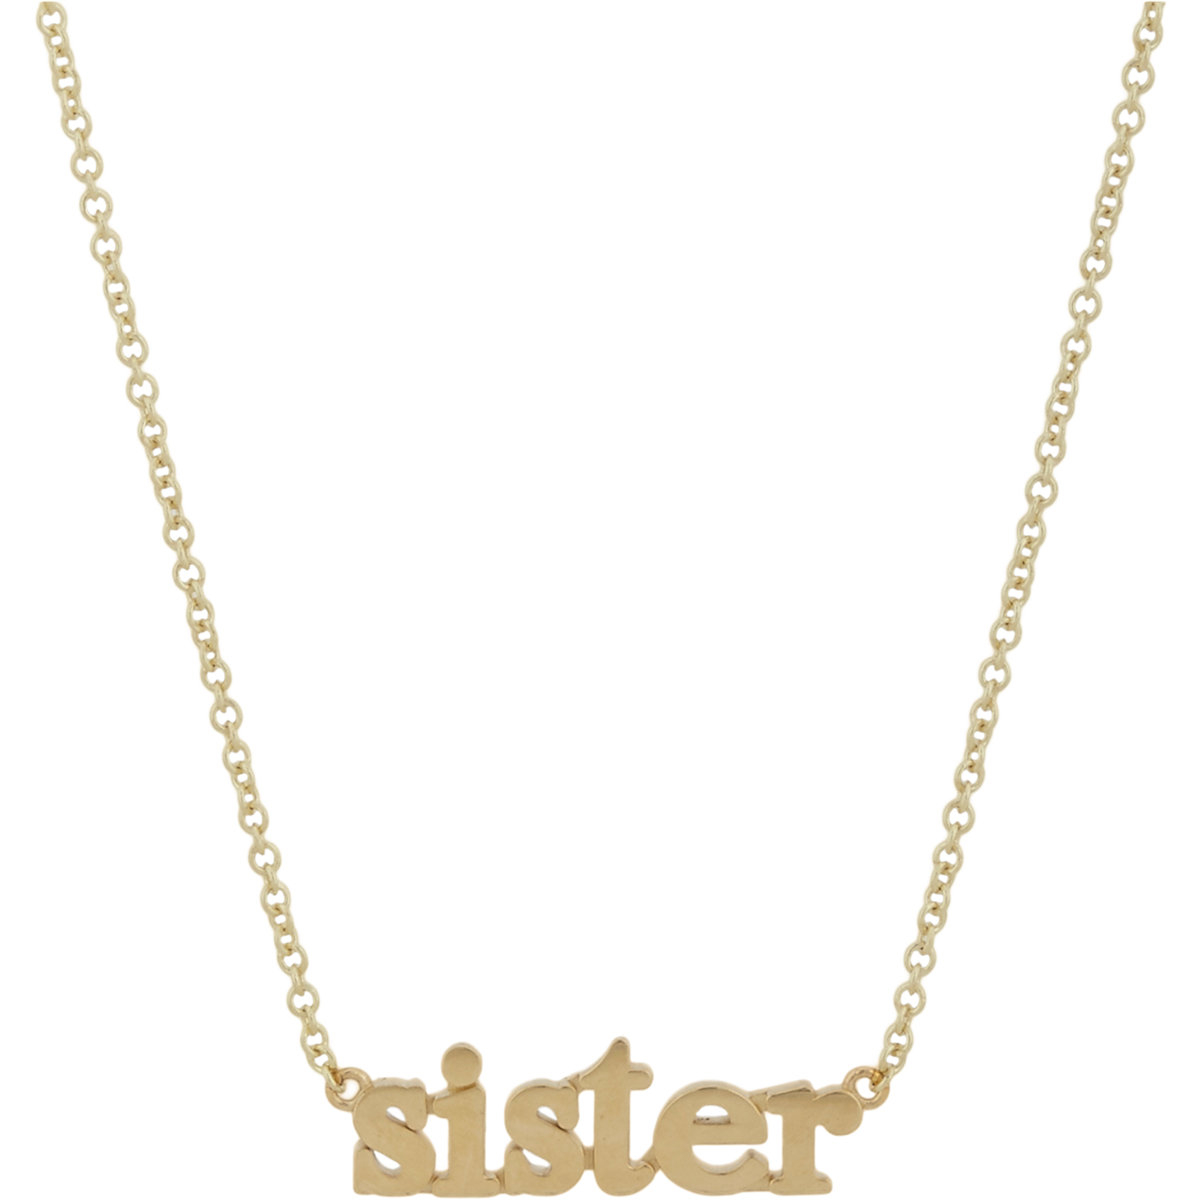 Jennifer meyer sister pendant necklace in metallic lyst gallery mozeypictures Image collections